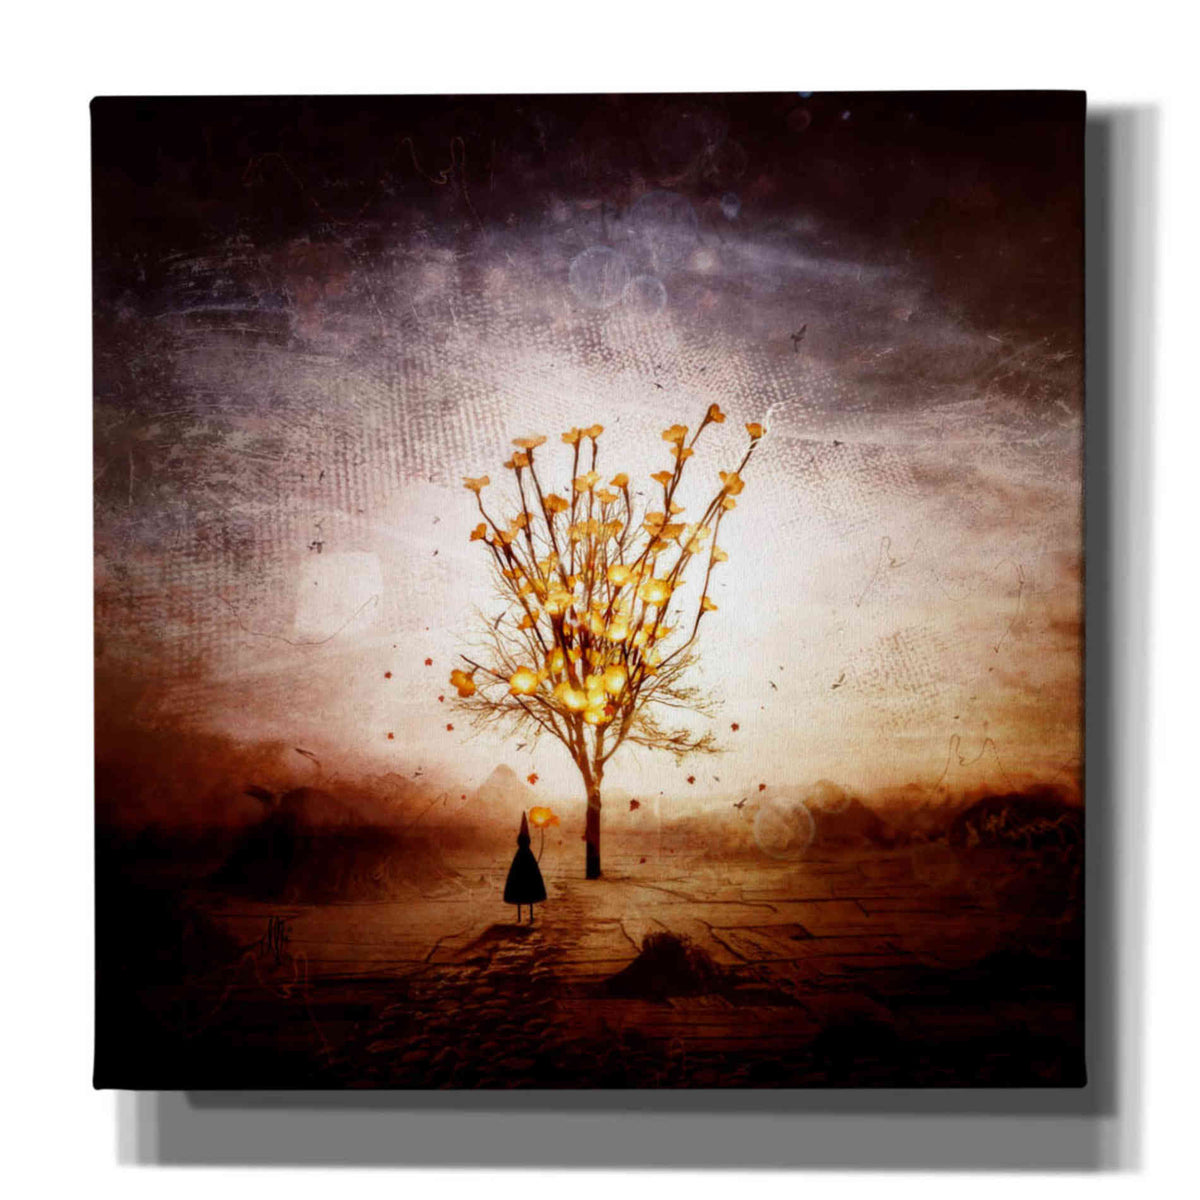 Cortesi Home 'Finding' by Mario Sanchez Nevado, Canvas Wall Art,Size 1 Square